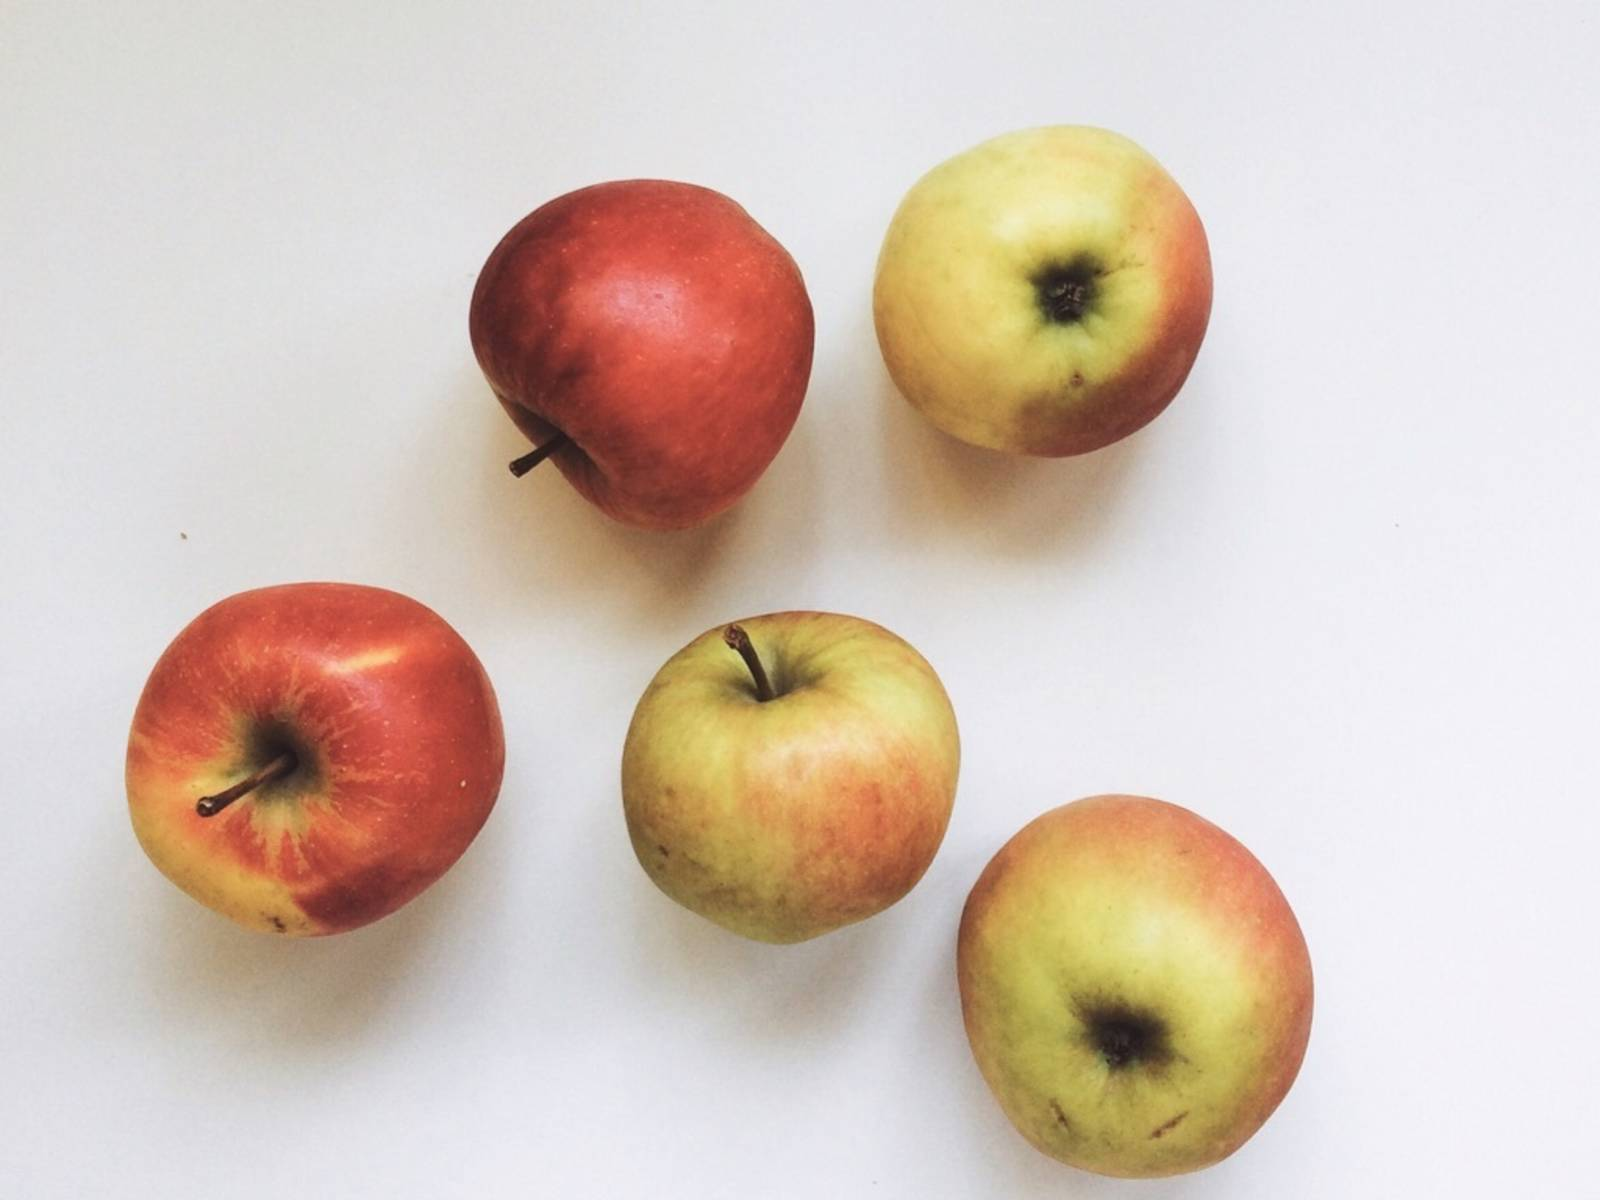 Wash and peel apples. Cut to personal preference—thin slices, for example. Fold into cake batter. Transfer batter to springform pan. Bake at 150°C/300°F (convection) for approx. 1 h. As baking time may vary from oven to oven, make sure you test cake for doneness. Insert wooden skewer into cake. If skewer comes out clean, cake is done. I serve it with caramel sauce and brittle.